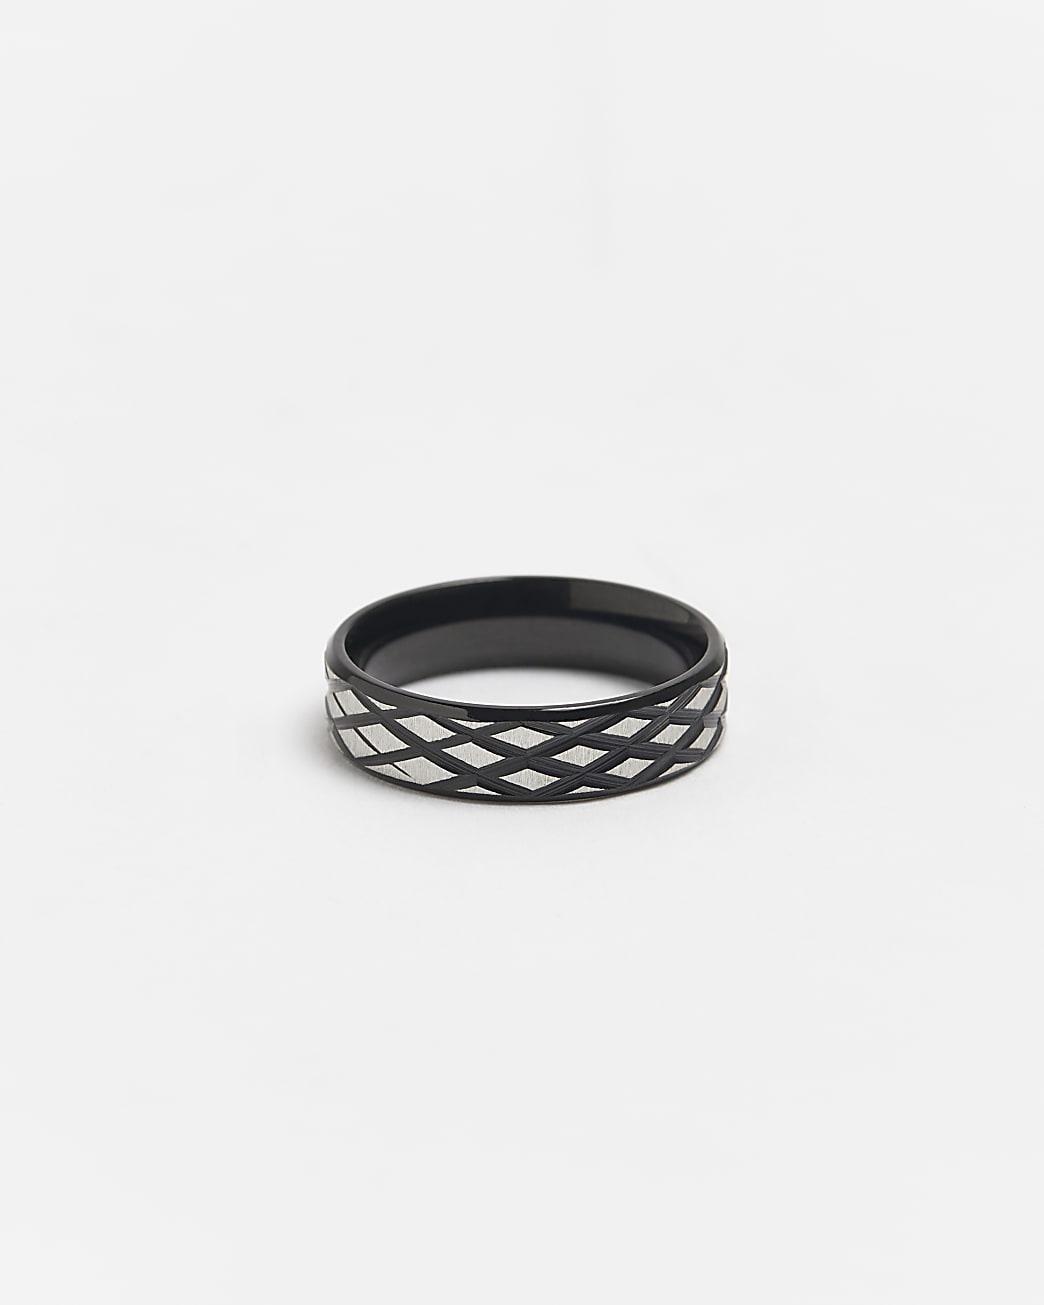 Black stainless steel engraved band ring